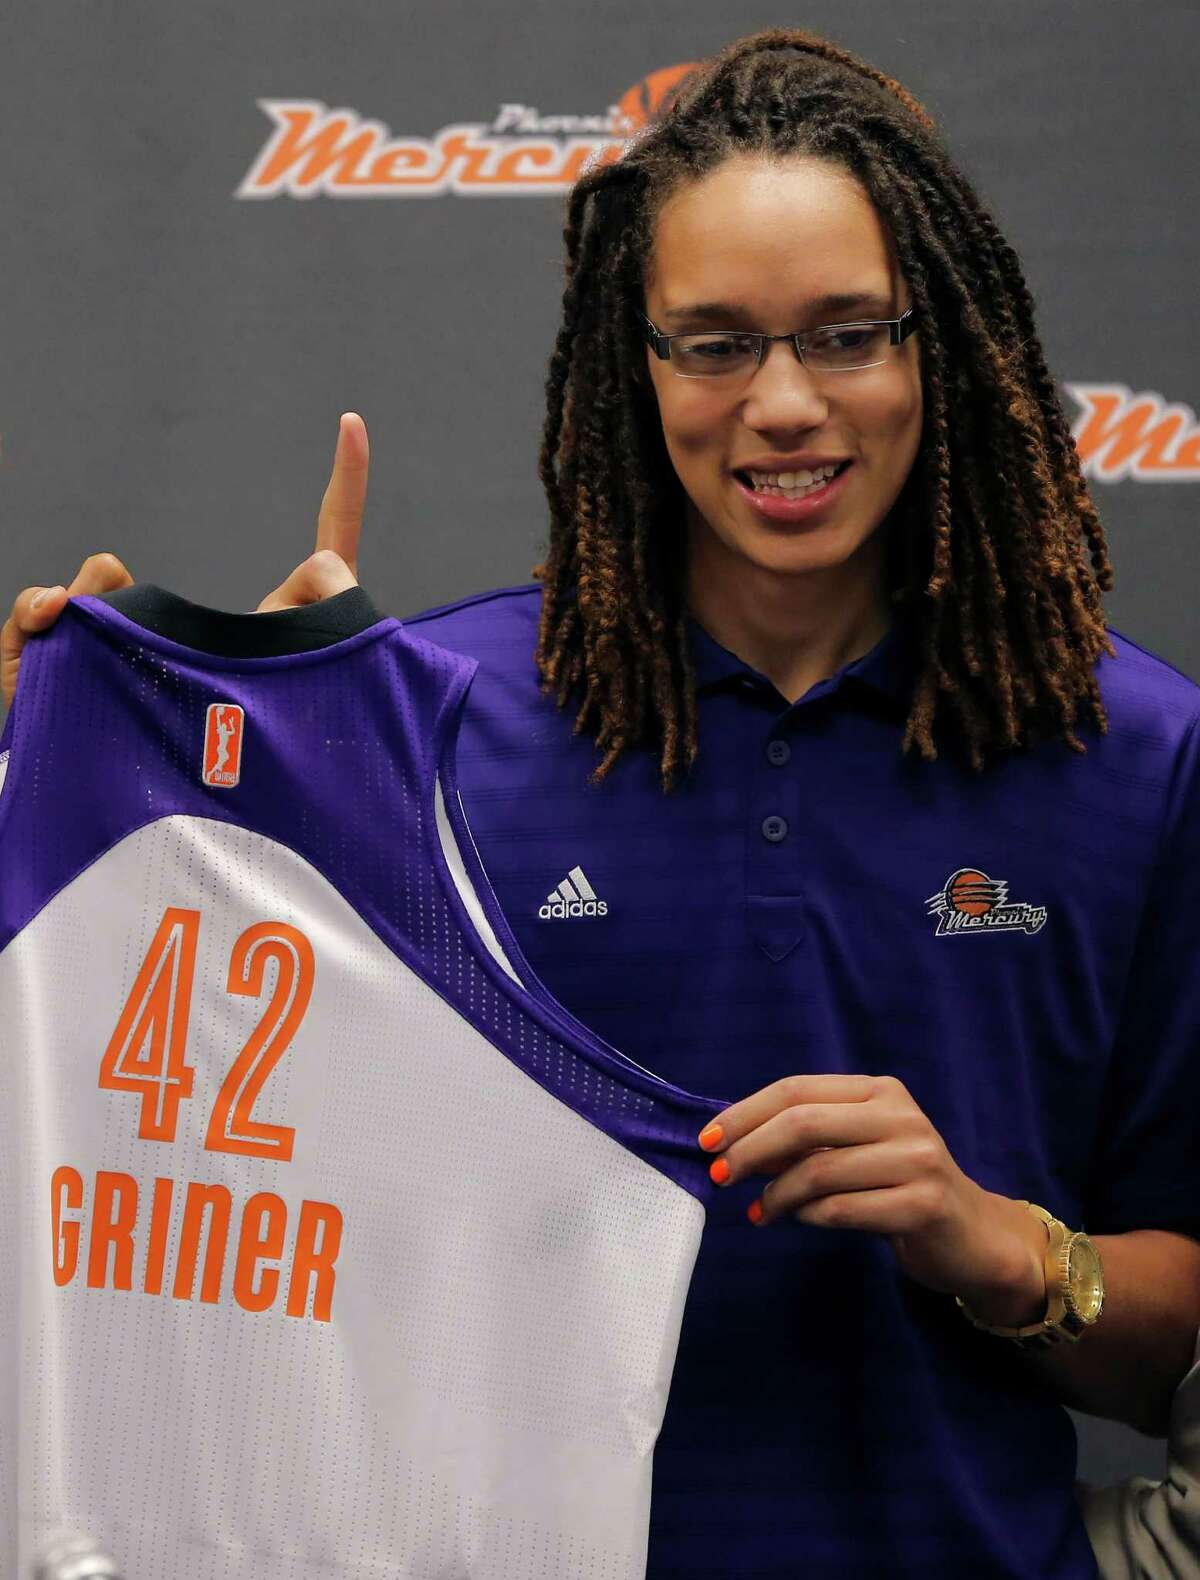 Basketball player Brittney GrinerFirstGriner was born in Houston and attended Nimitz High School.